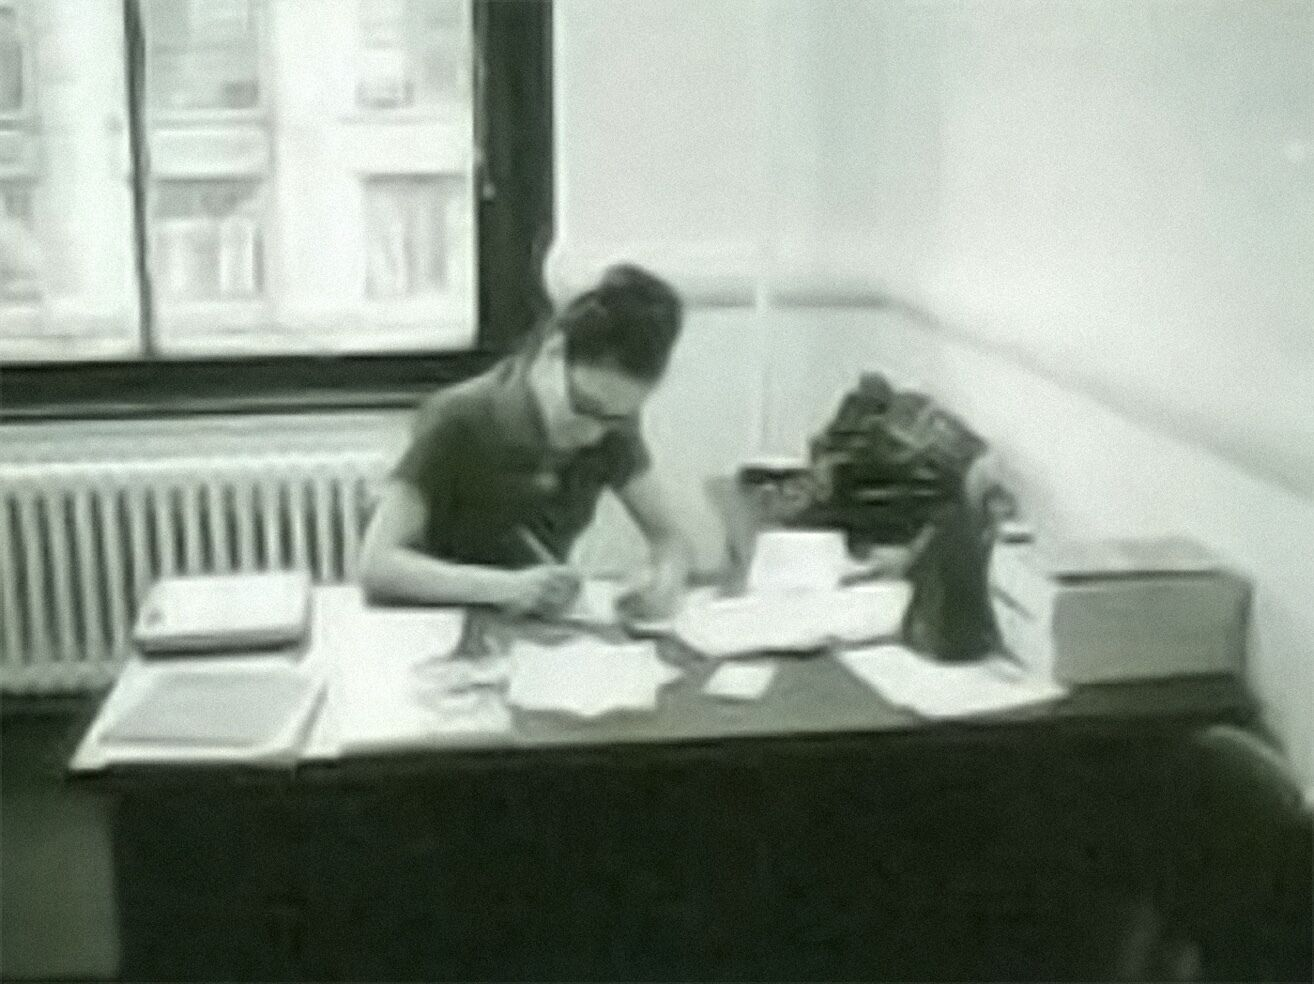 A woman sitting at a desk and looking down at a piece of paper she's writing on.